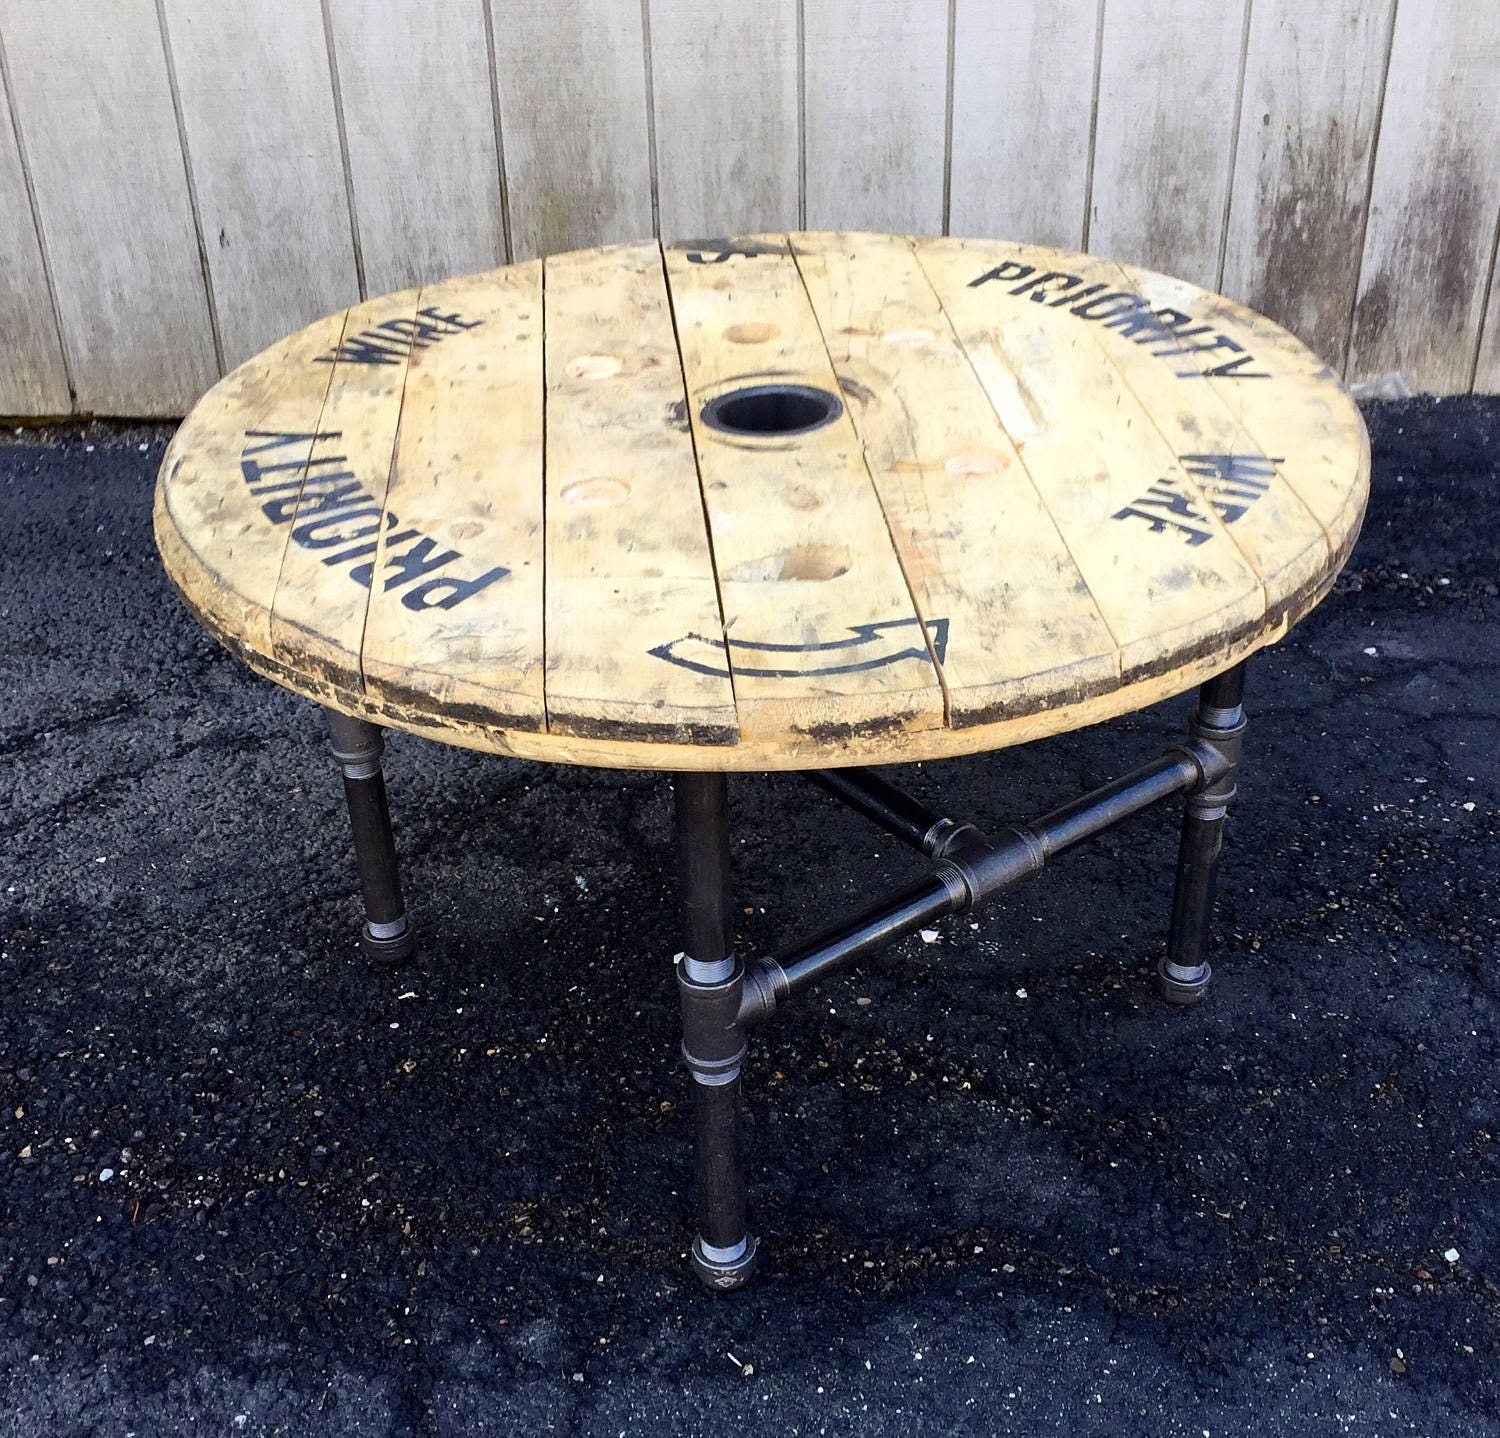 Reclaimed Wood Spool Coffee Table Industrial Salvage rustic